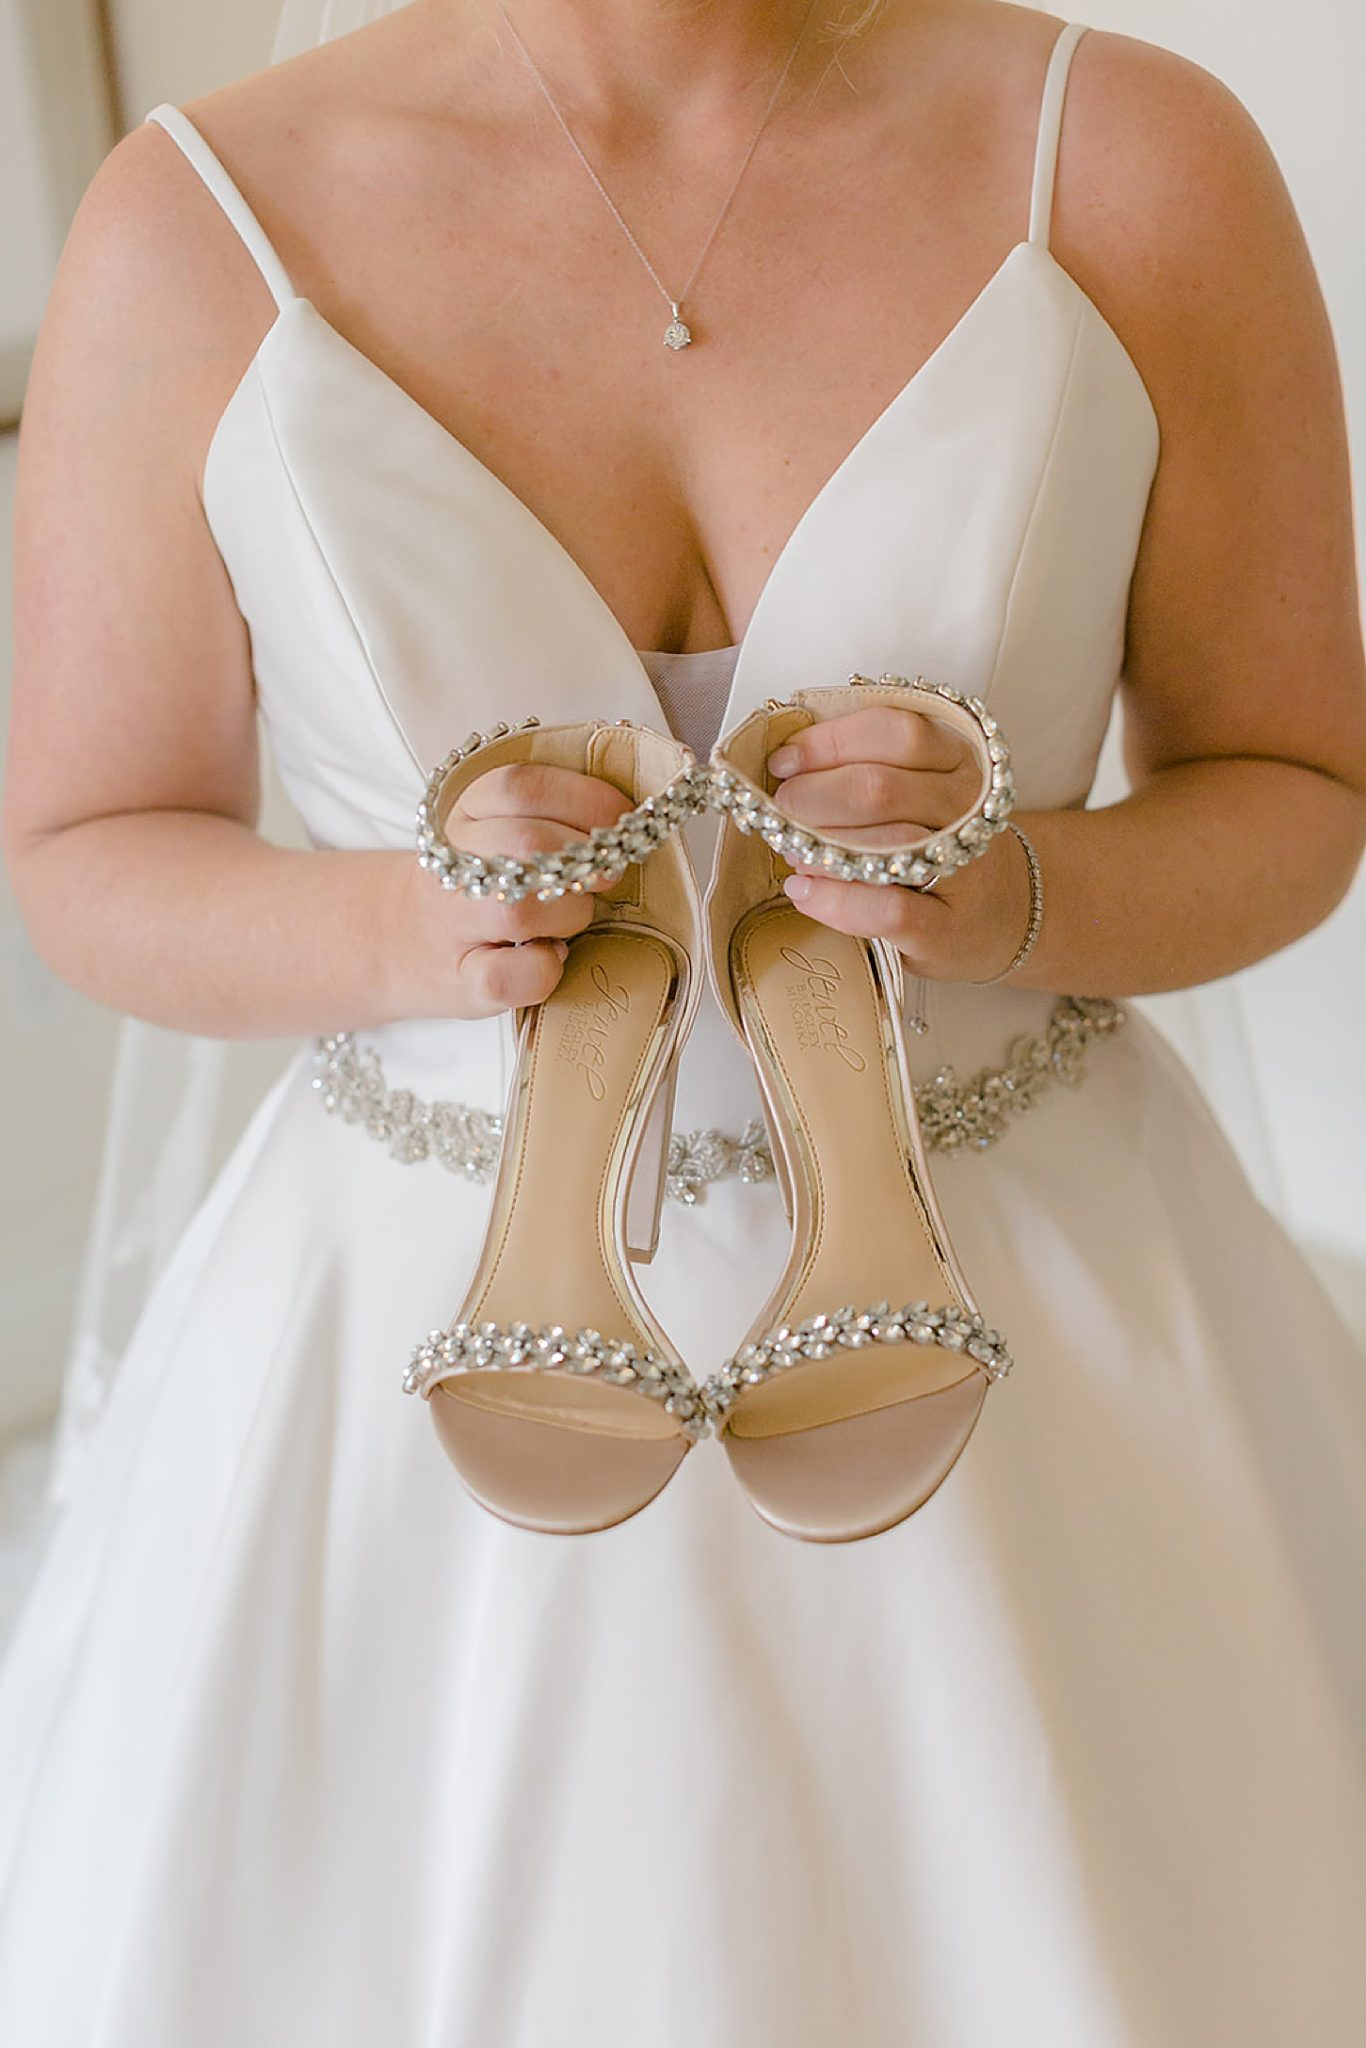 Linwood Country Club Summer Wedding Photography Studio by Magdalena Studios Jenn Kyle 0017 scaled